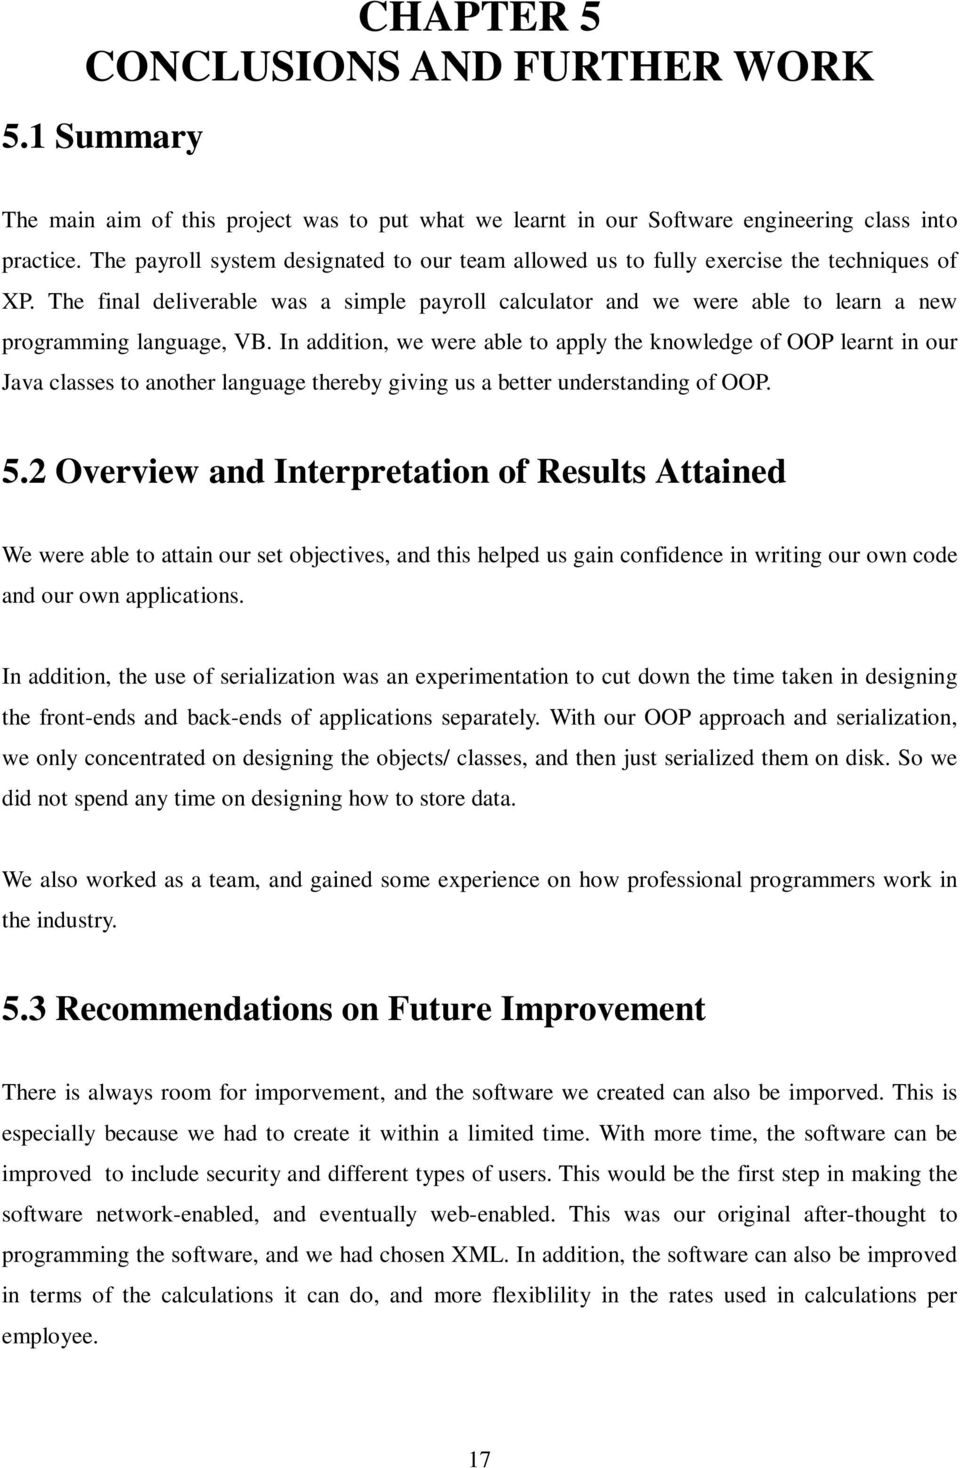 project report on payroll system pdf